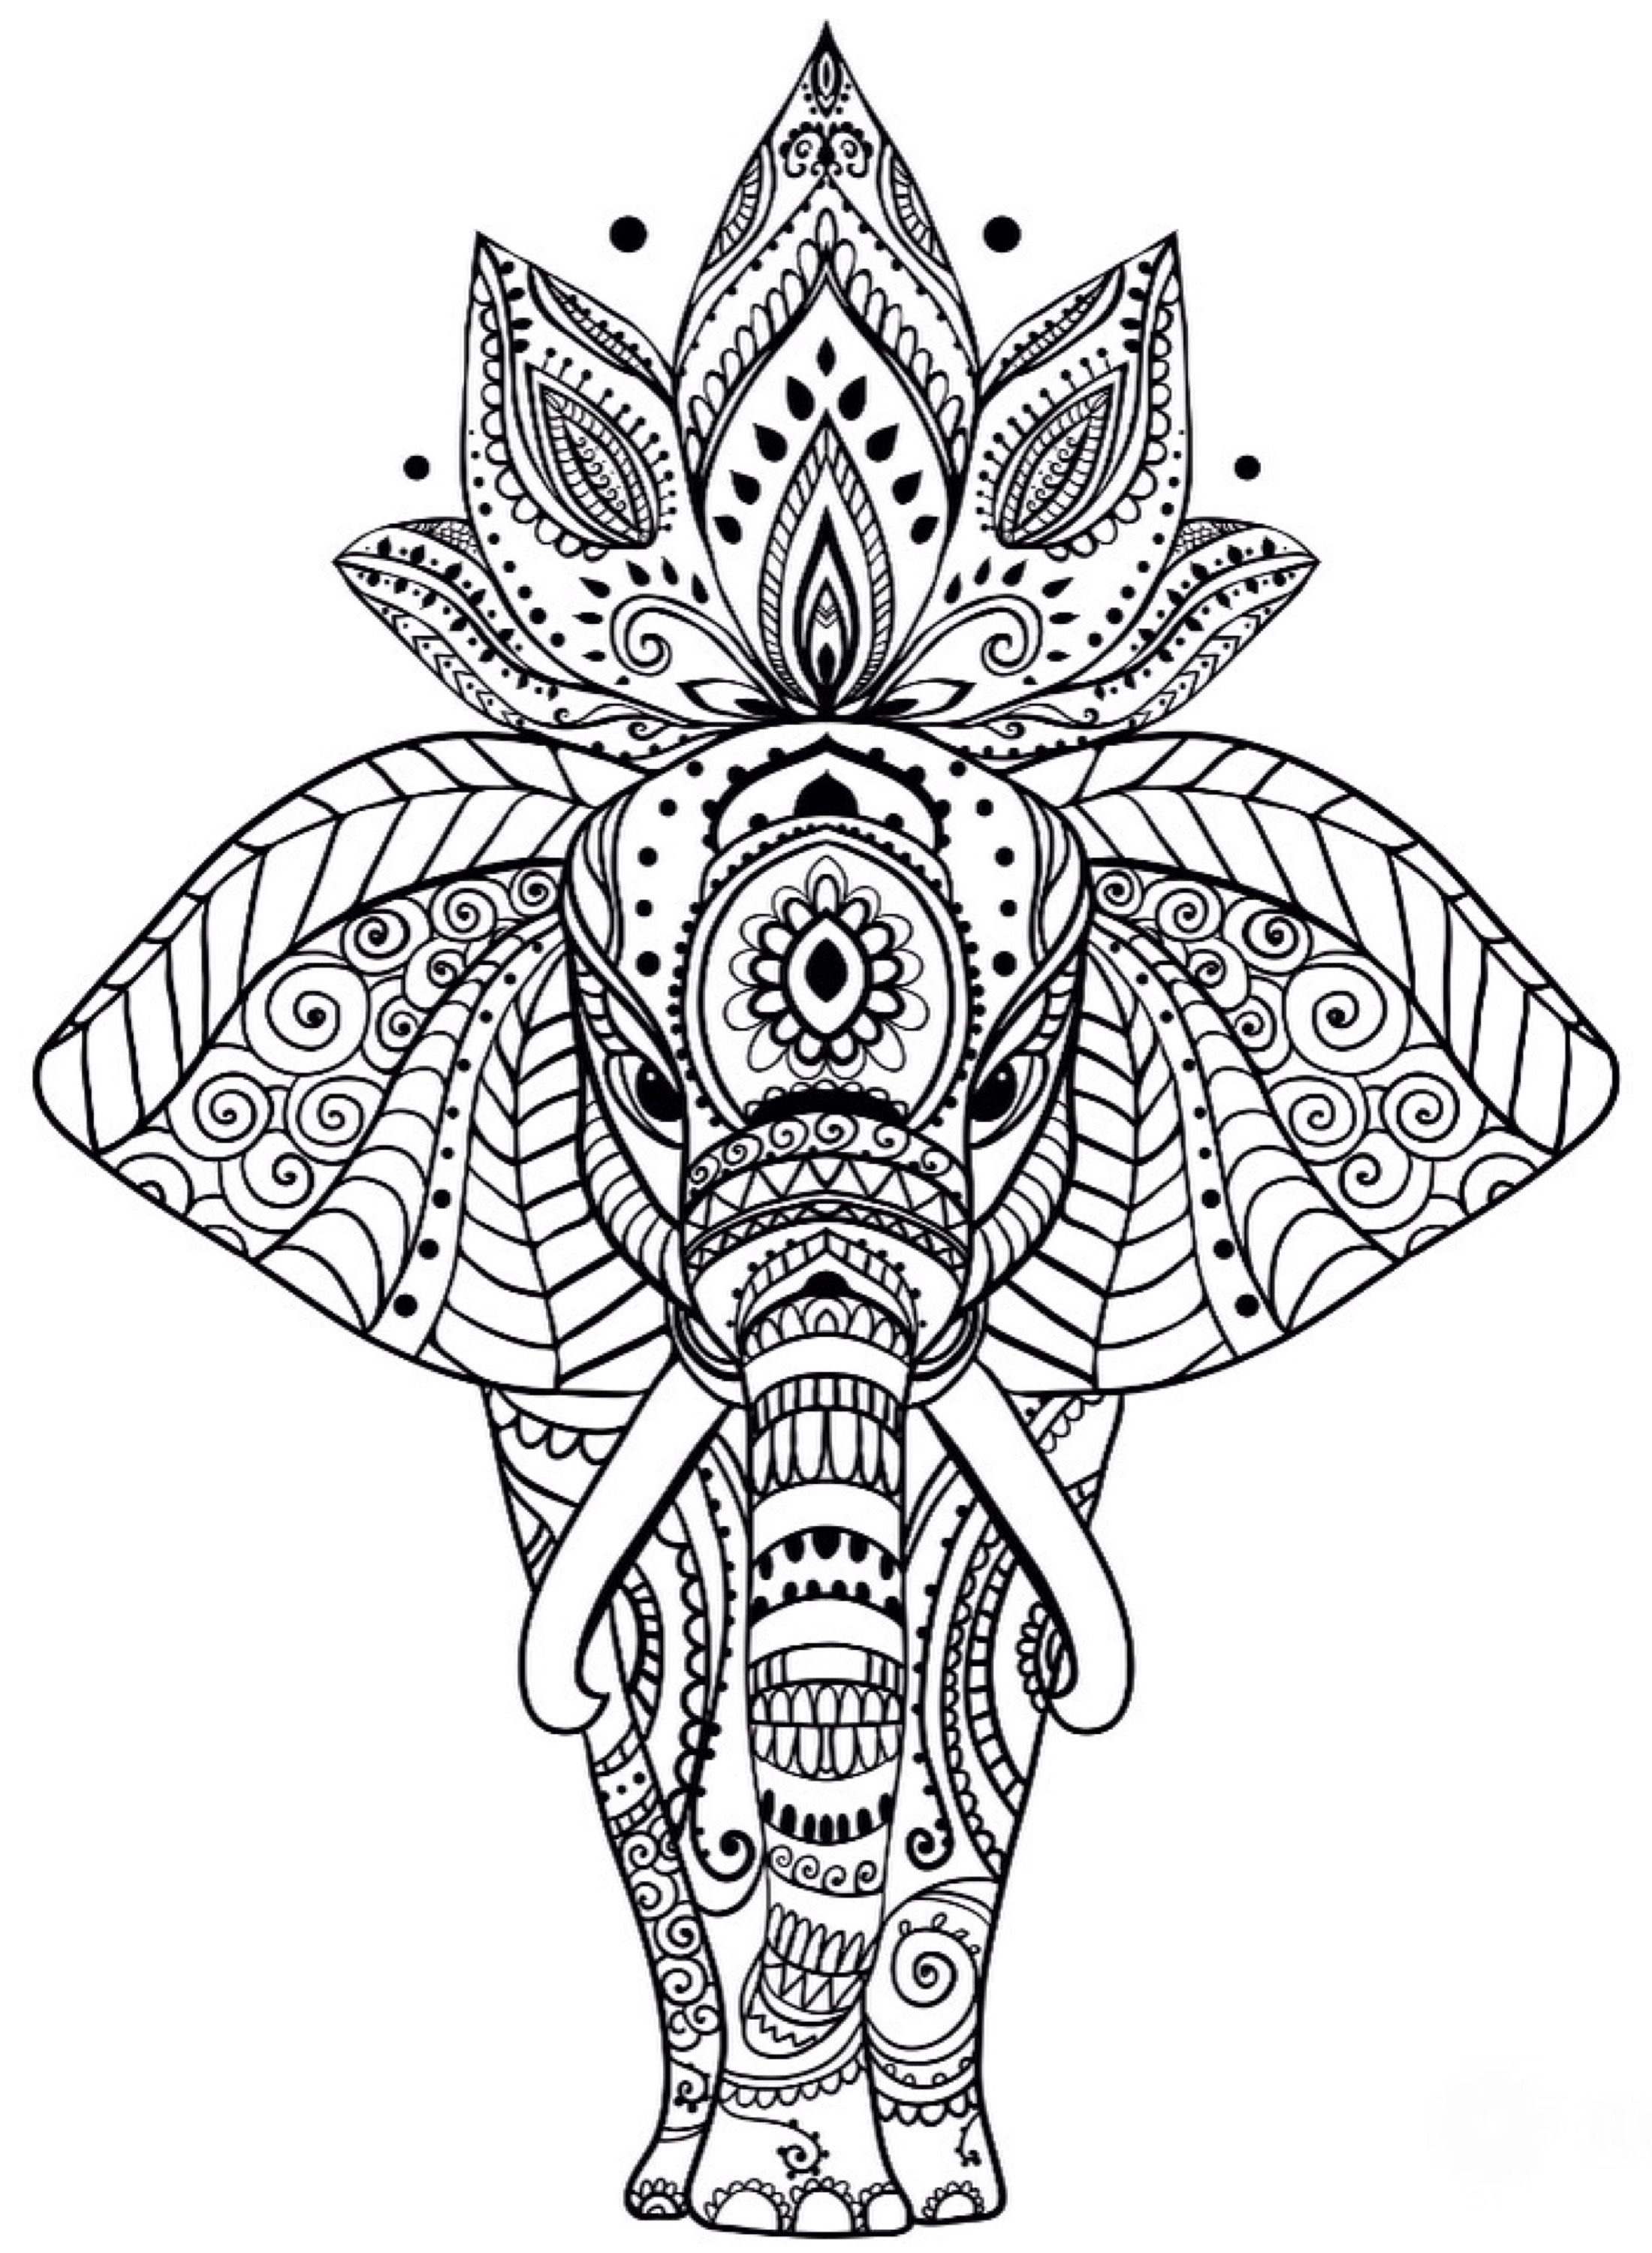 Mandala Coloring Pages Animal